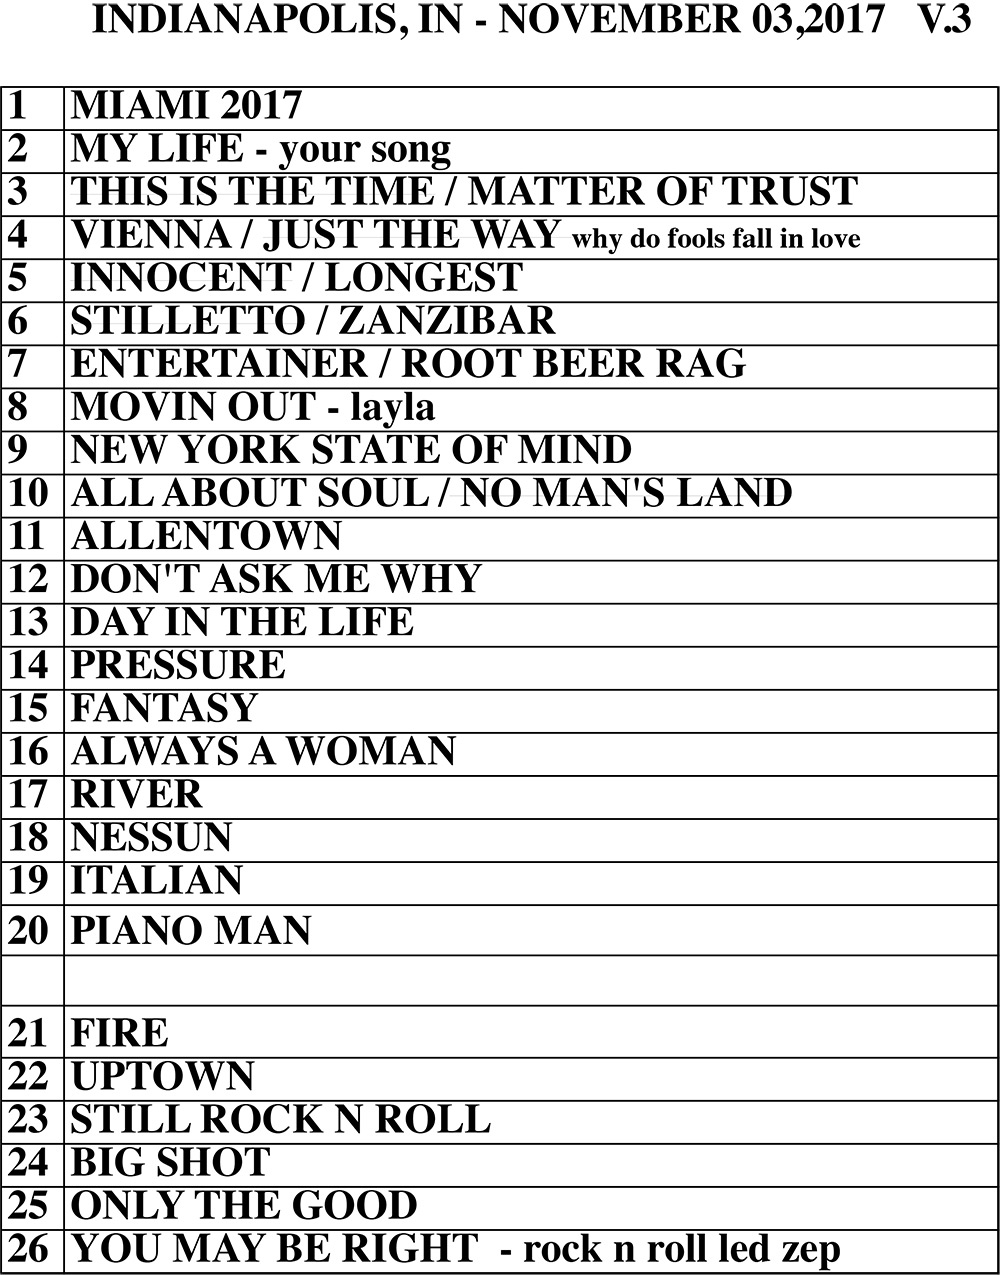 Set list from Billy Joel concert Bankers Life Fieldhouse Indianapolis, IN, November 3, 2017